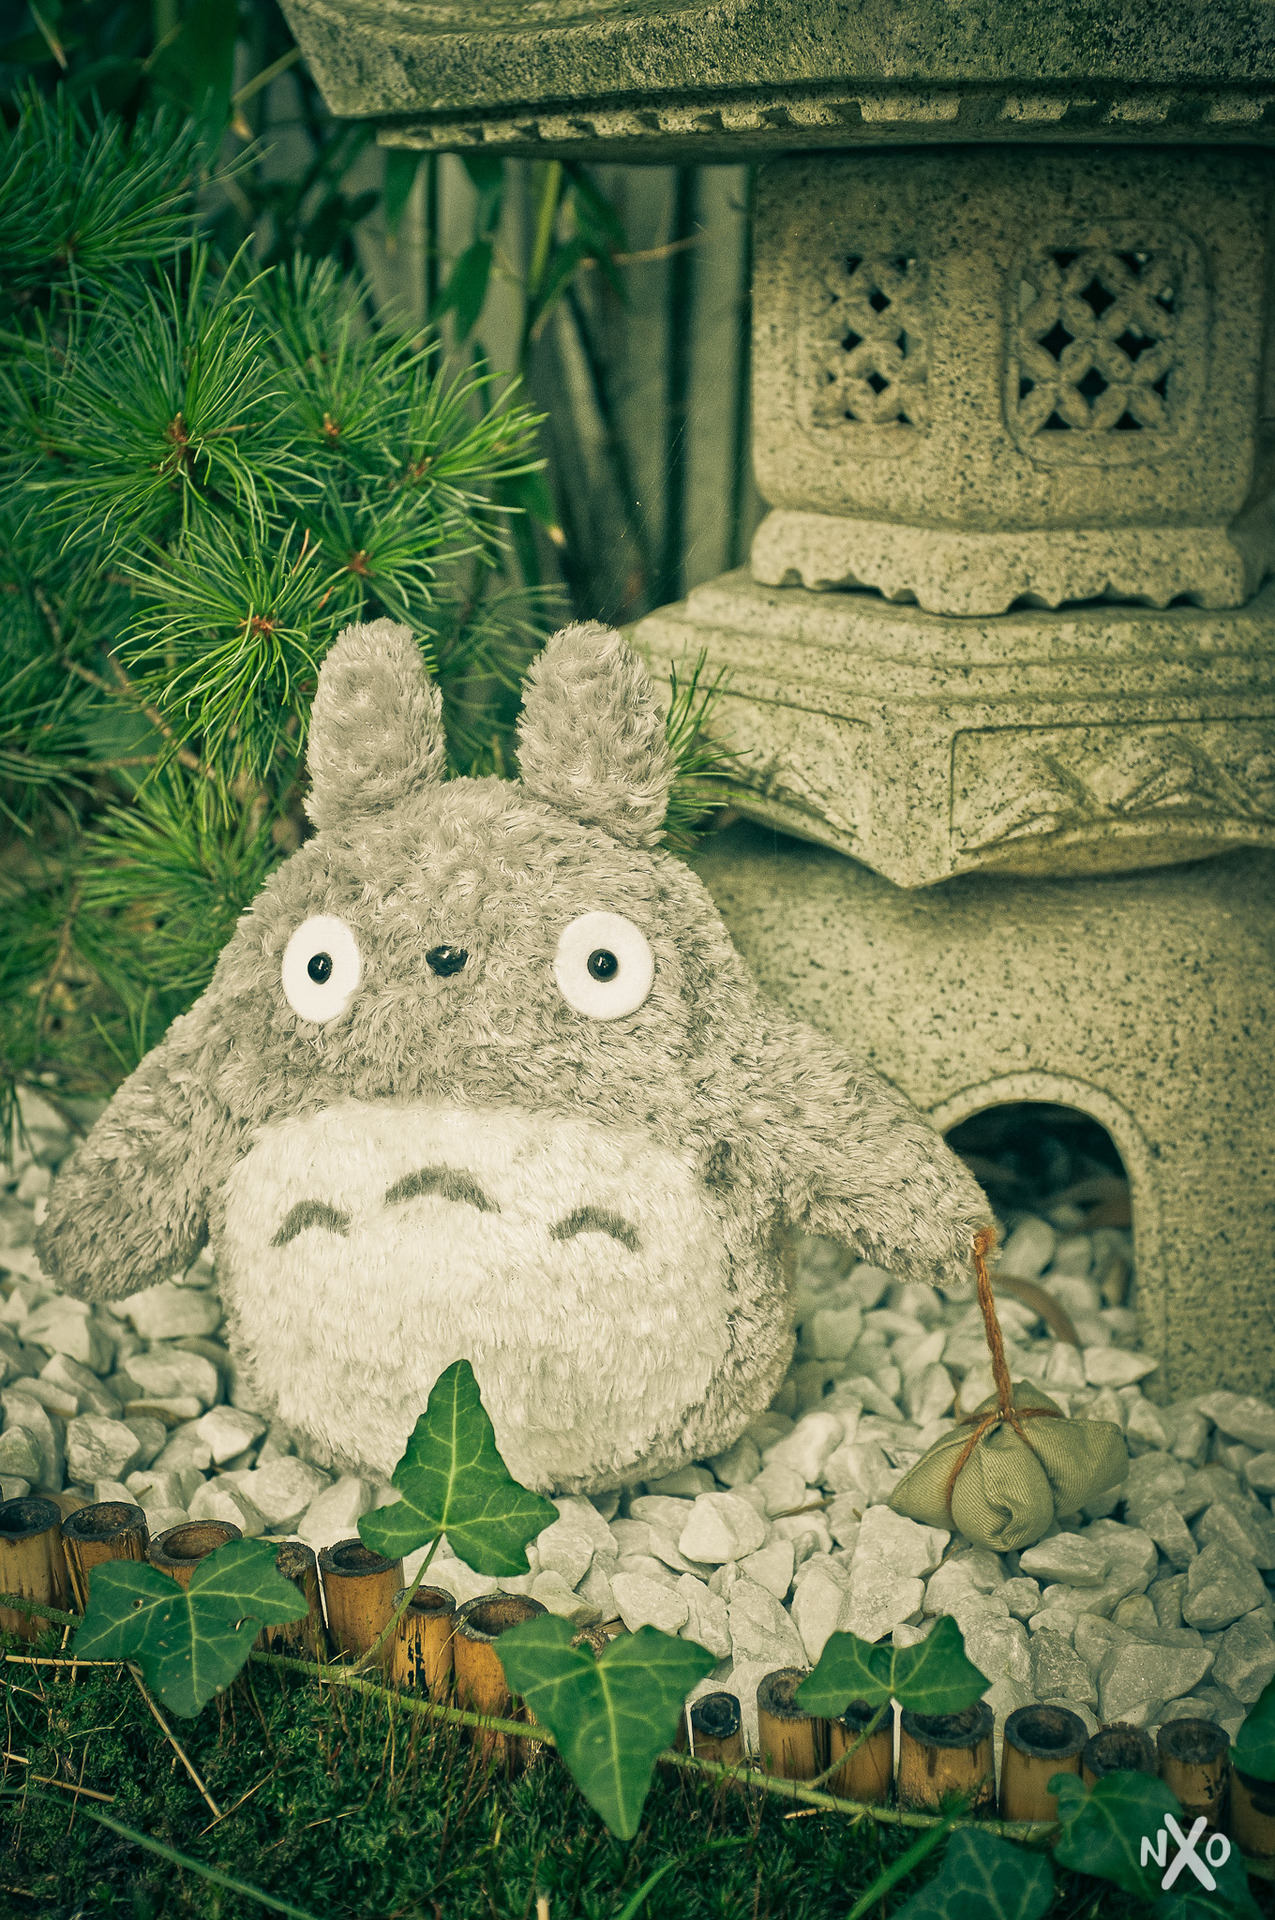 New Totoro plush in the garden!